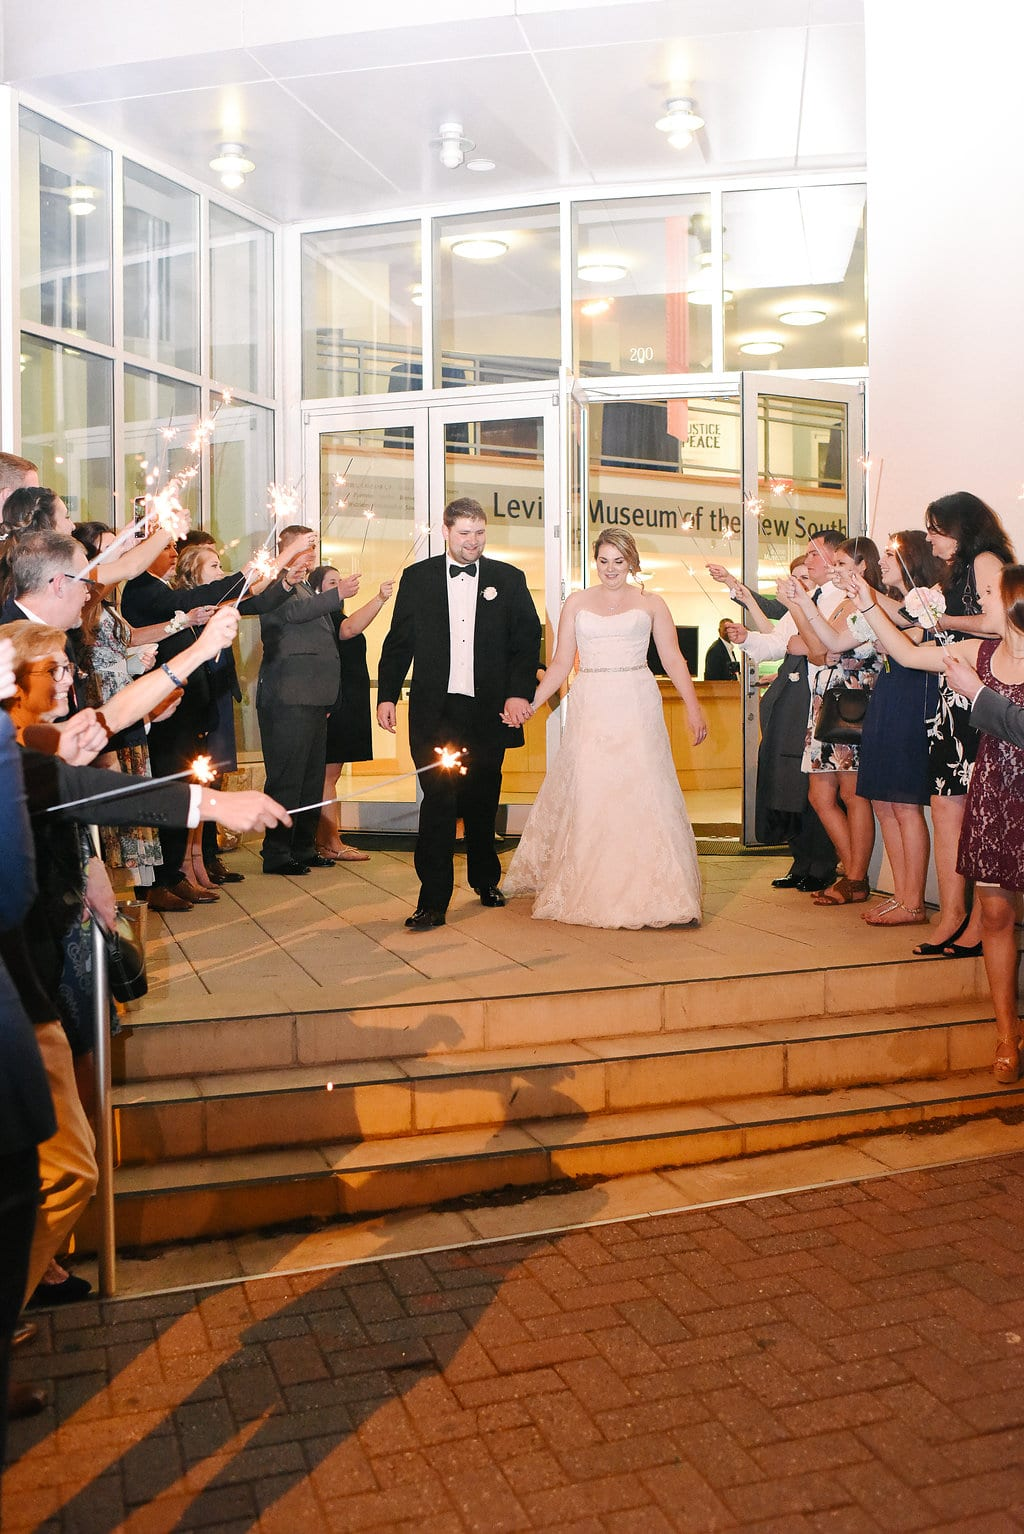 wedding exit at the Levine Museum of the New South